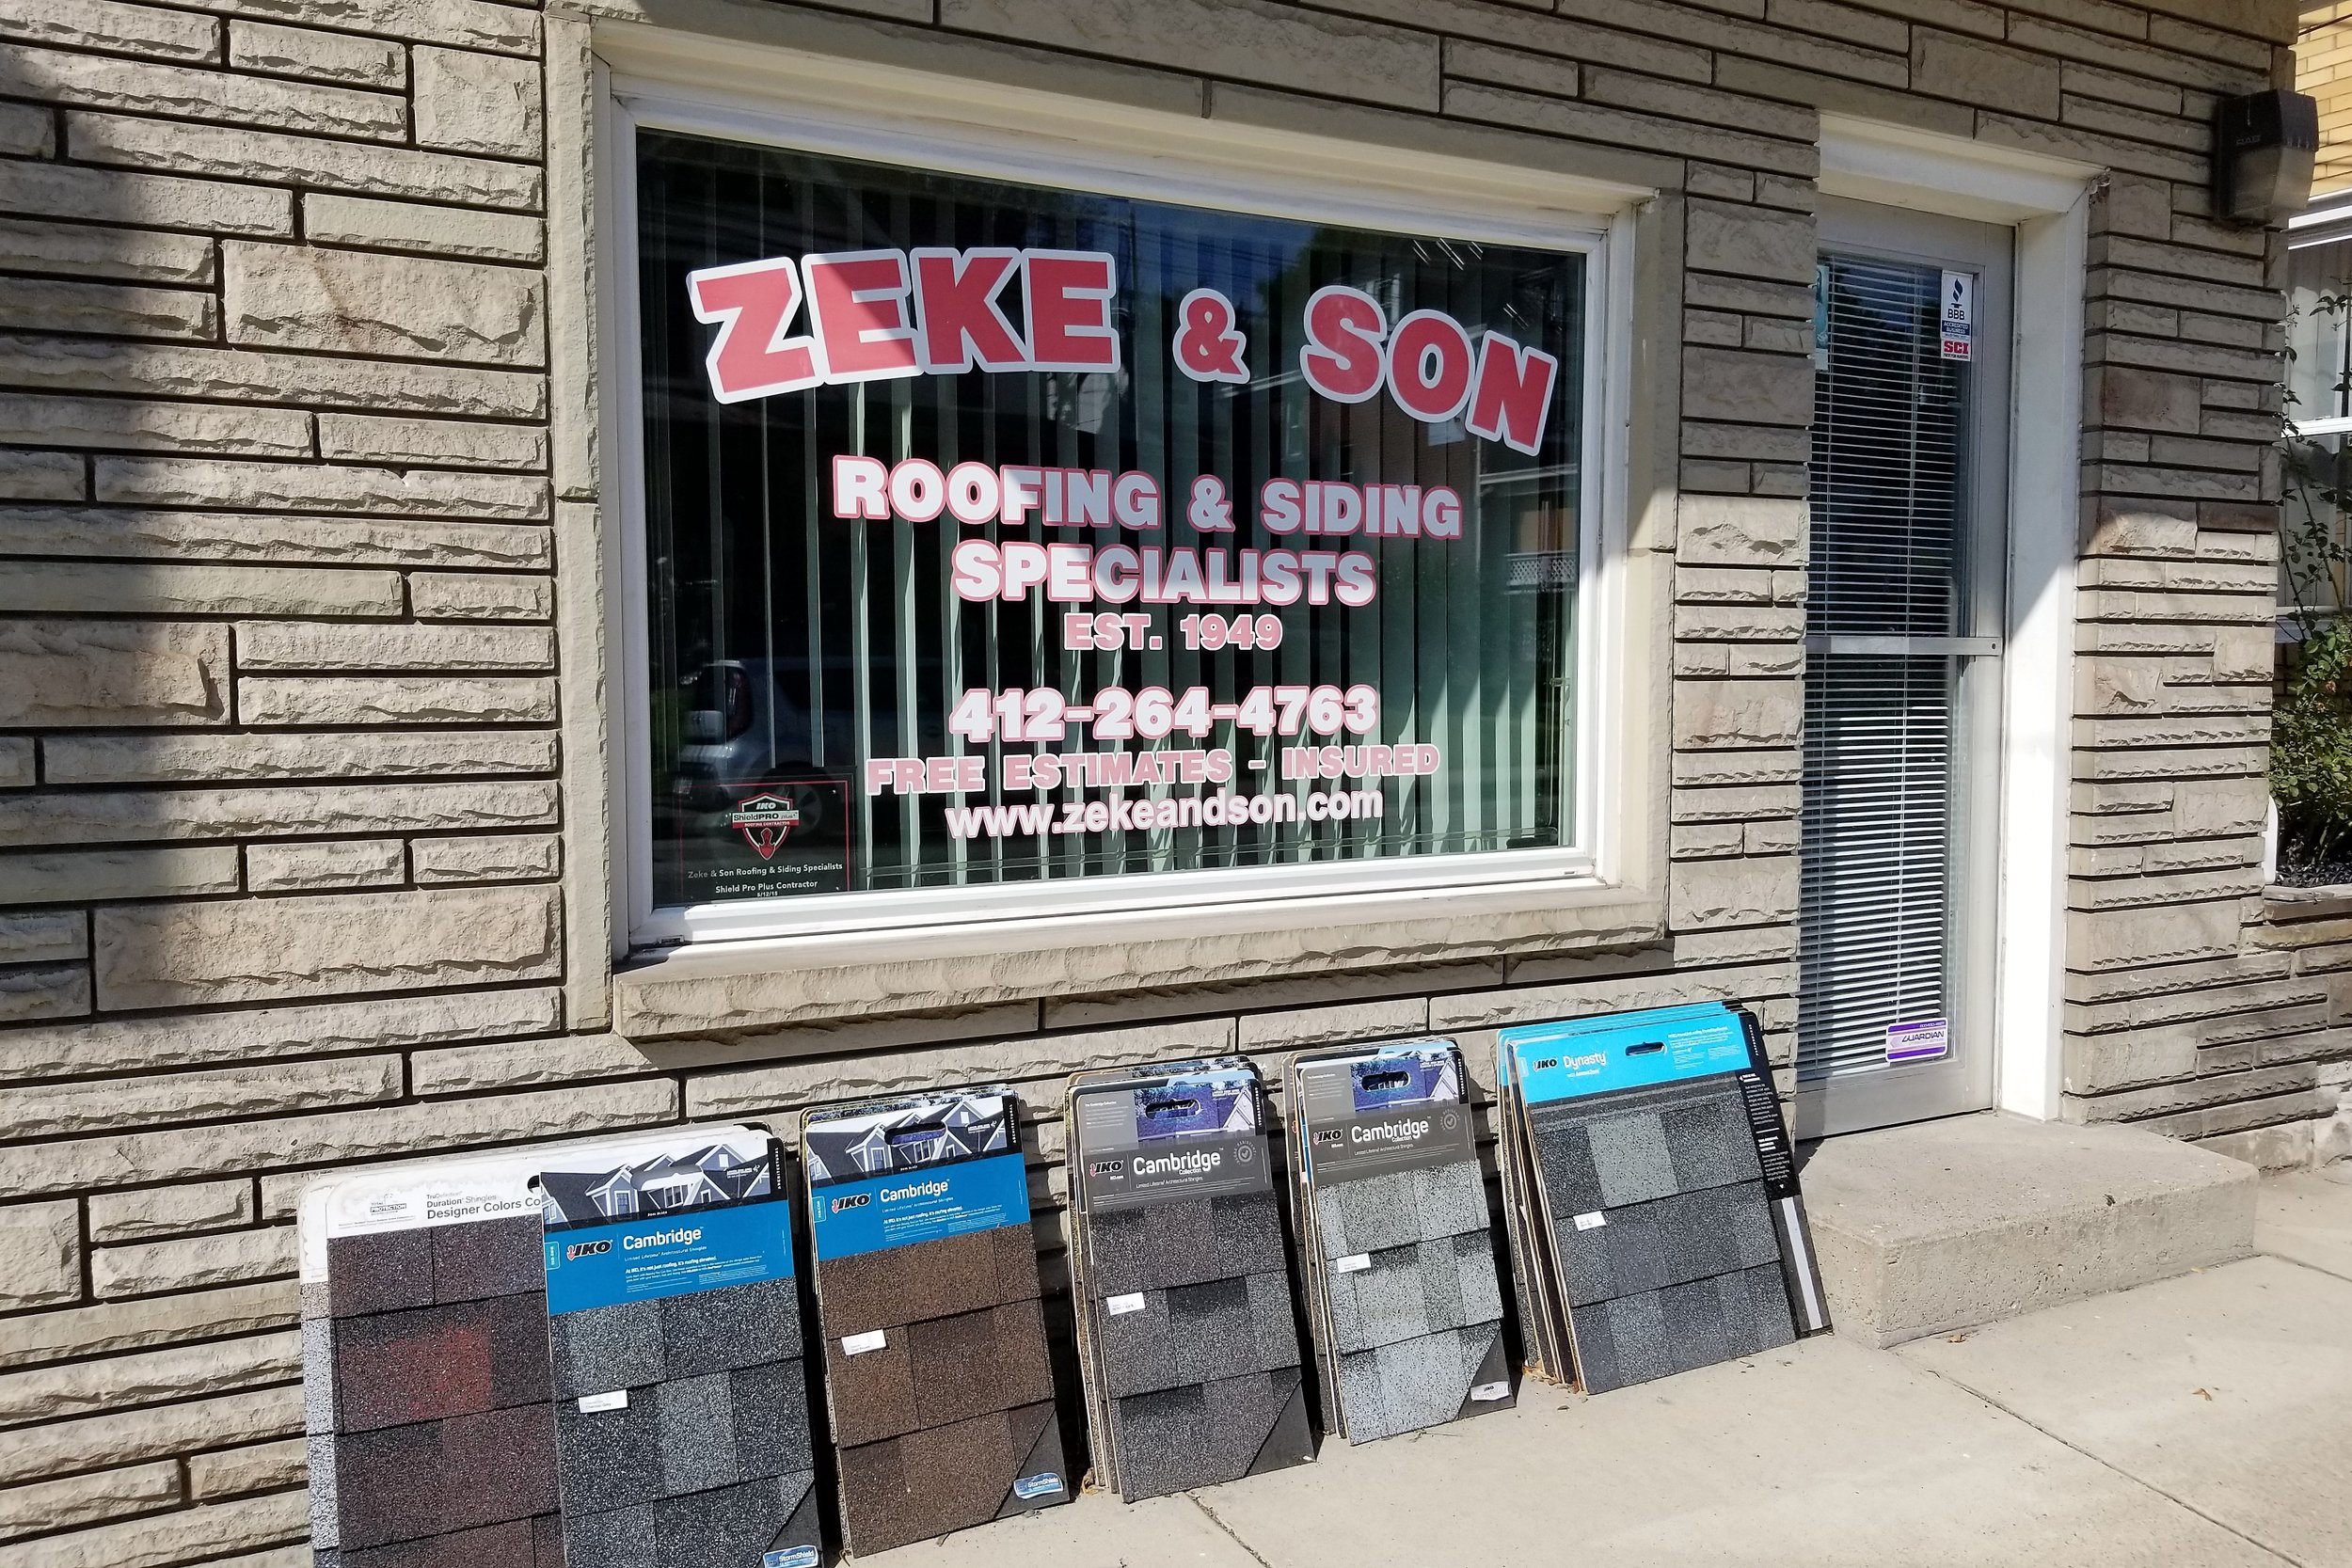 Zeke & Son Roofing & Siding Specialists - 865 5th Ave,(412) 264-4763